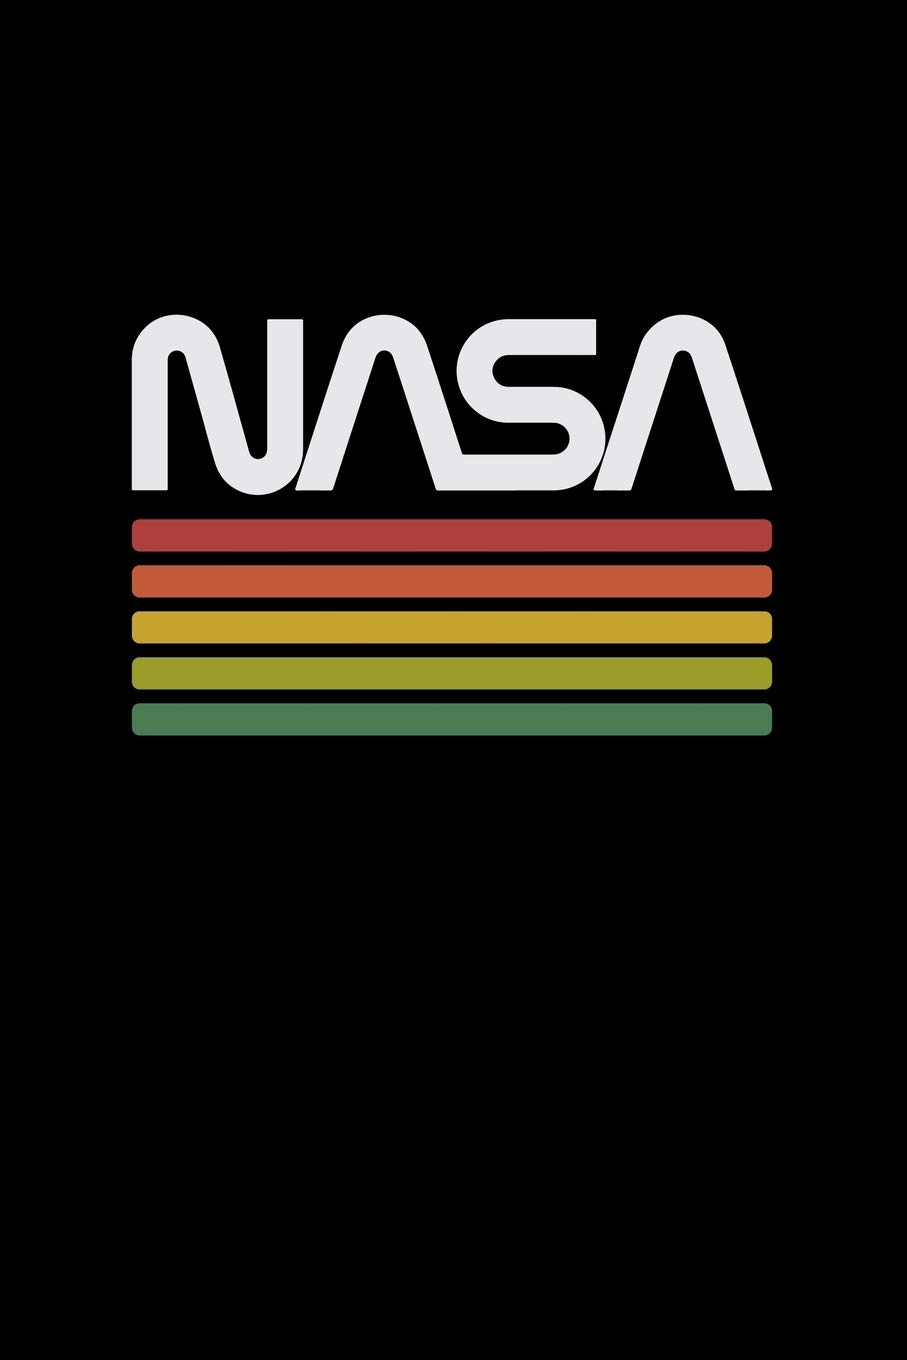 Nasa: Worm Logo Space Astronaut Lovers Gifts Blank Notebook.